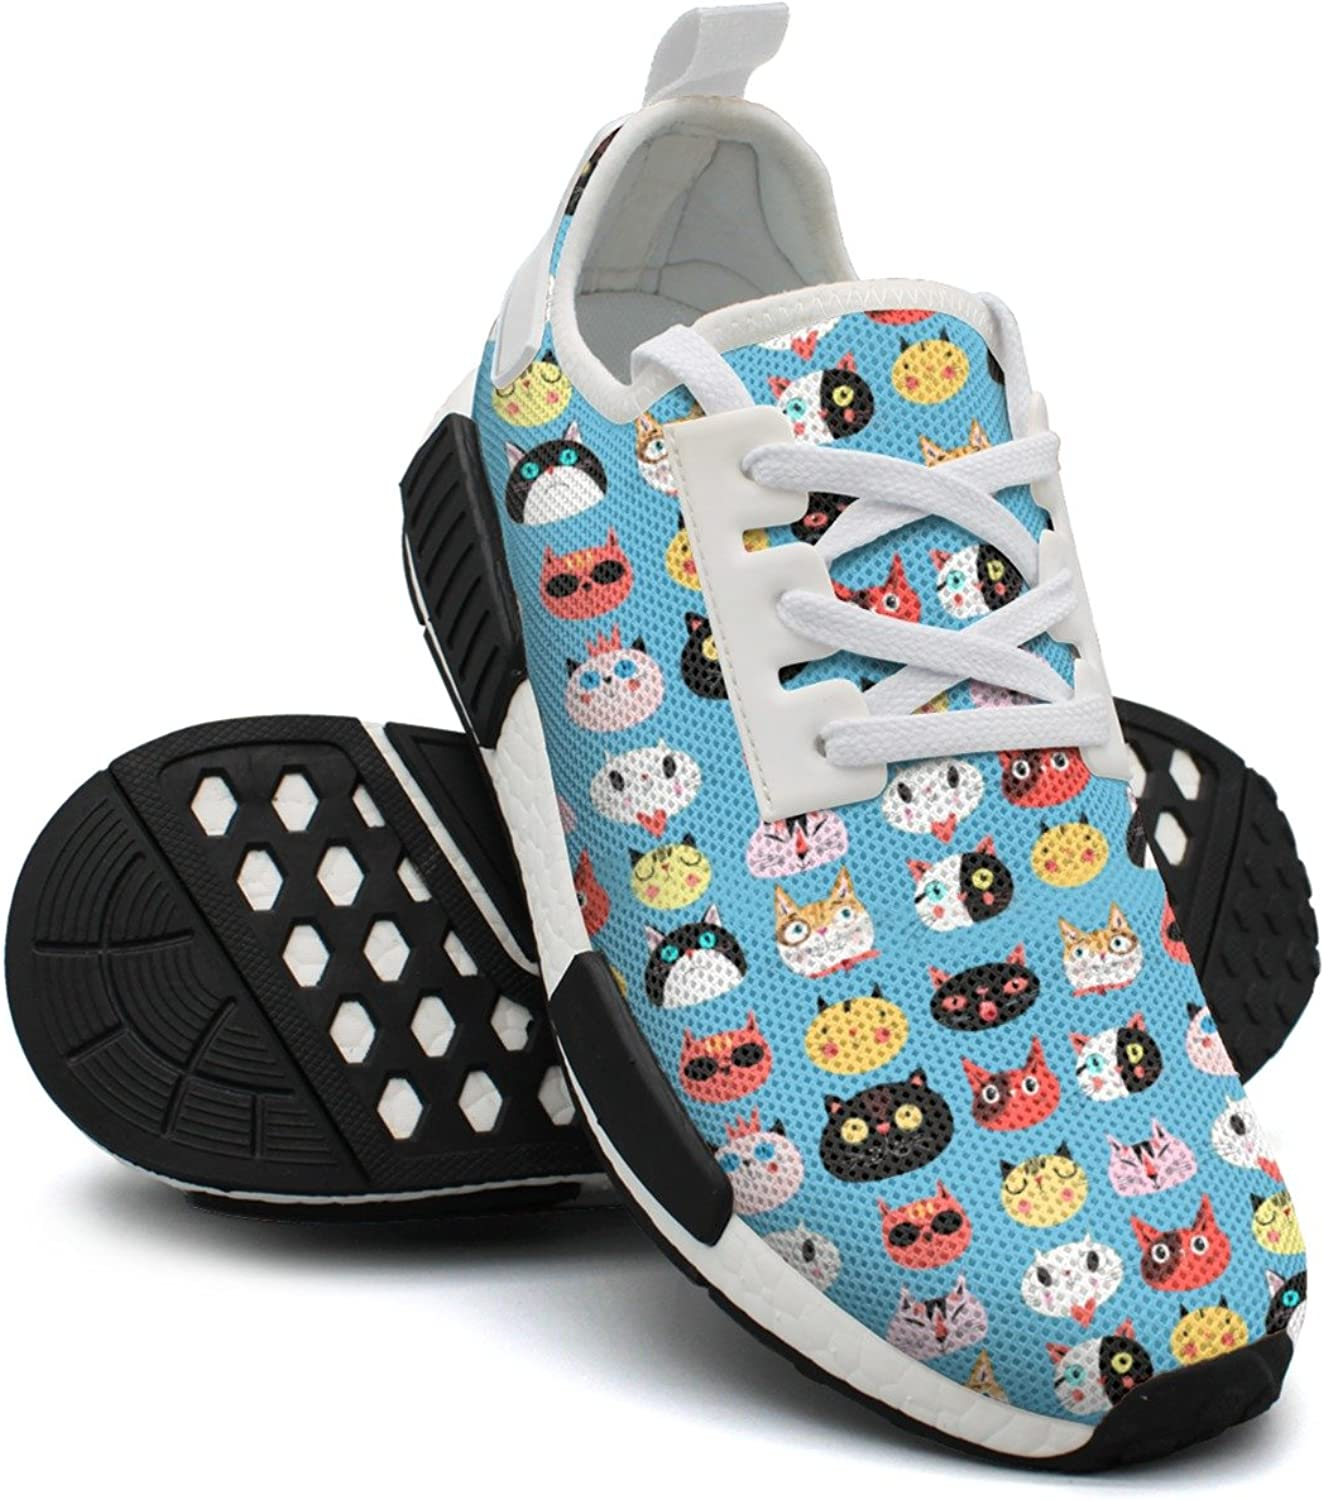 Ktyyuwwww Women colorful Cool Cartoon Cute Cats Faces bluee Background Jogger Casual Running shoes